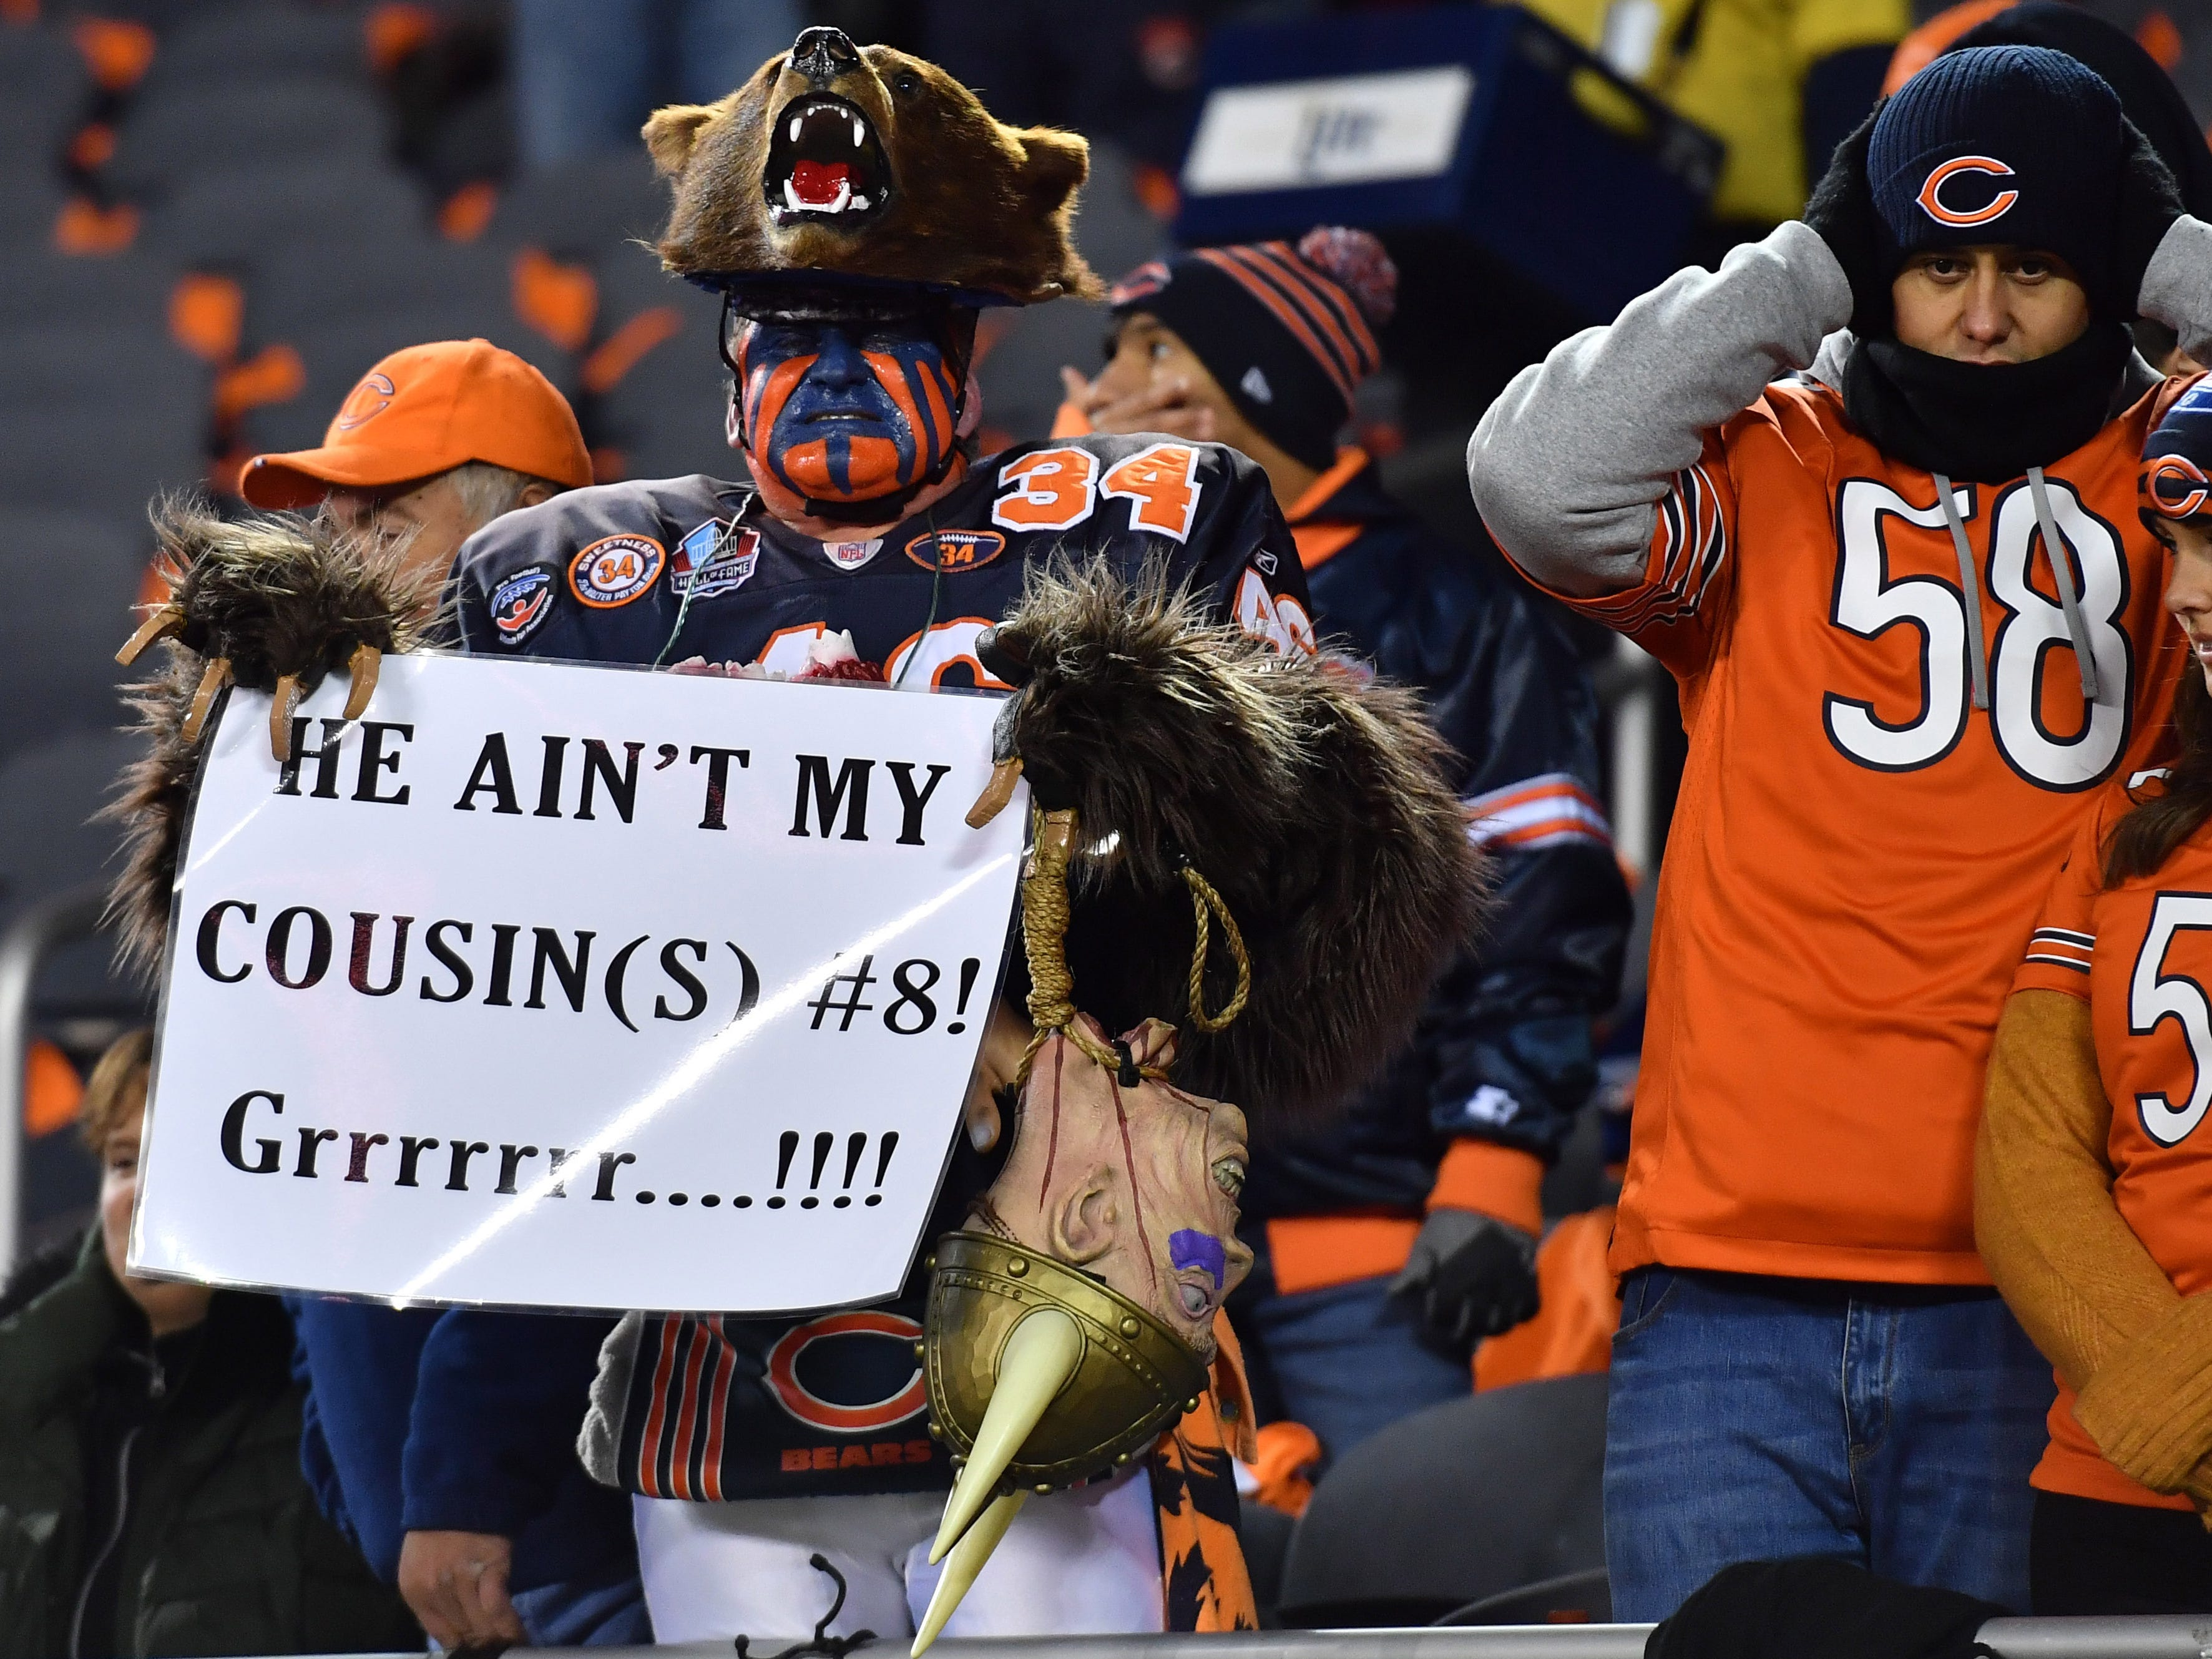 The Chicago Bears fan known as Bearman, Don Wachter, holds a sign during warmups before the game between the Chicago Bears and the Minnesota Vikings at Soldier Field.